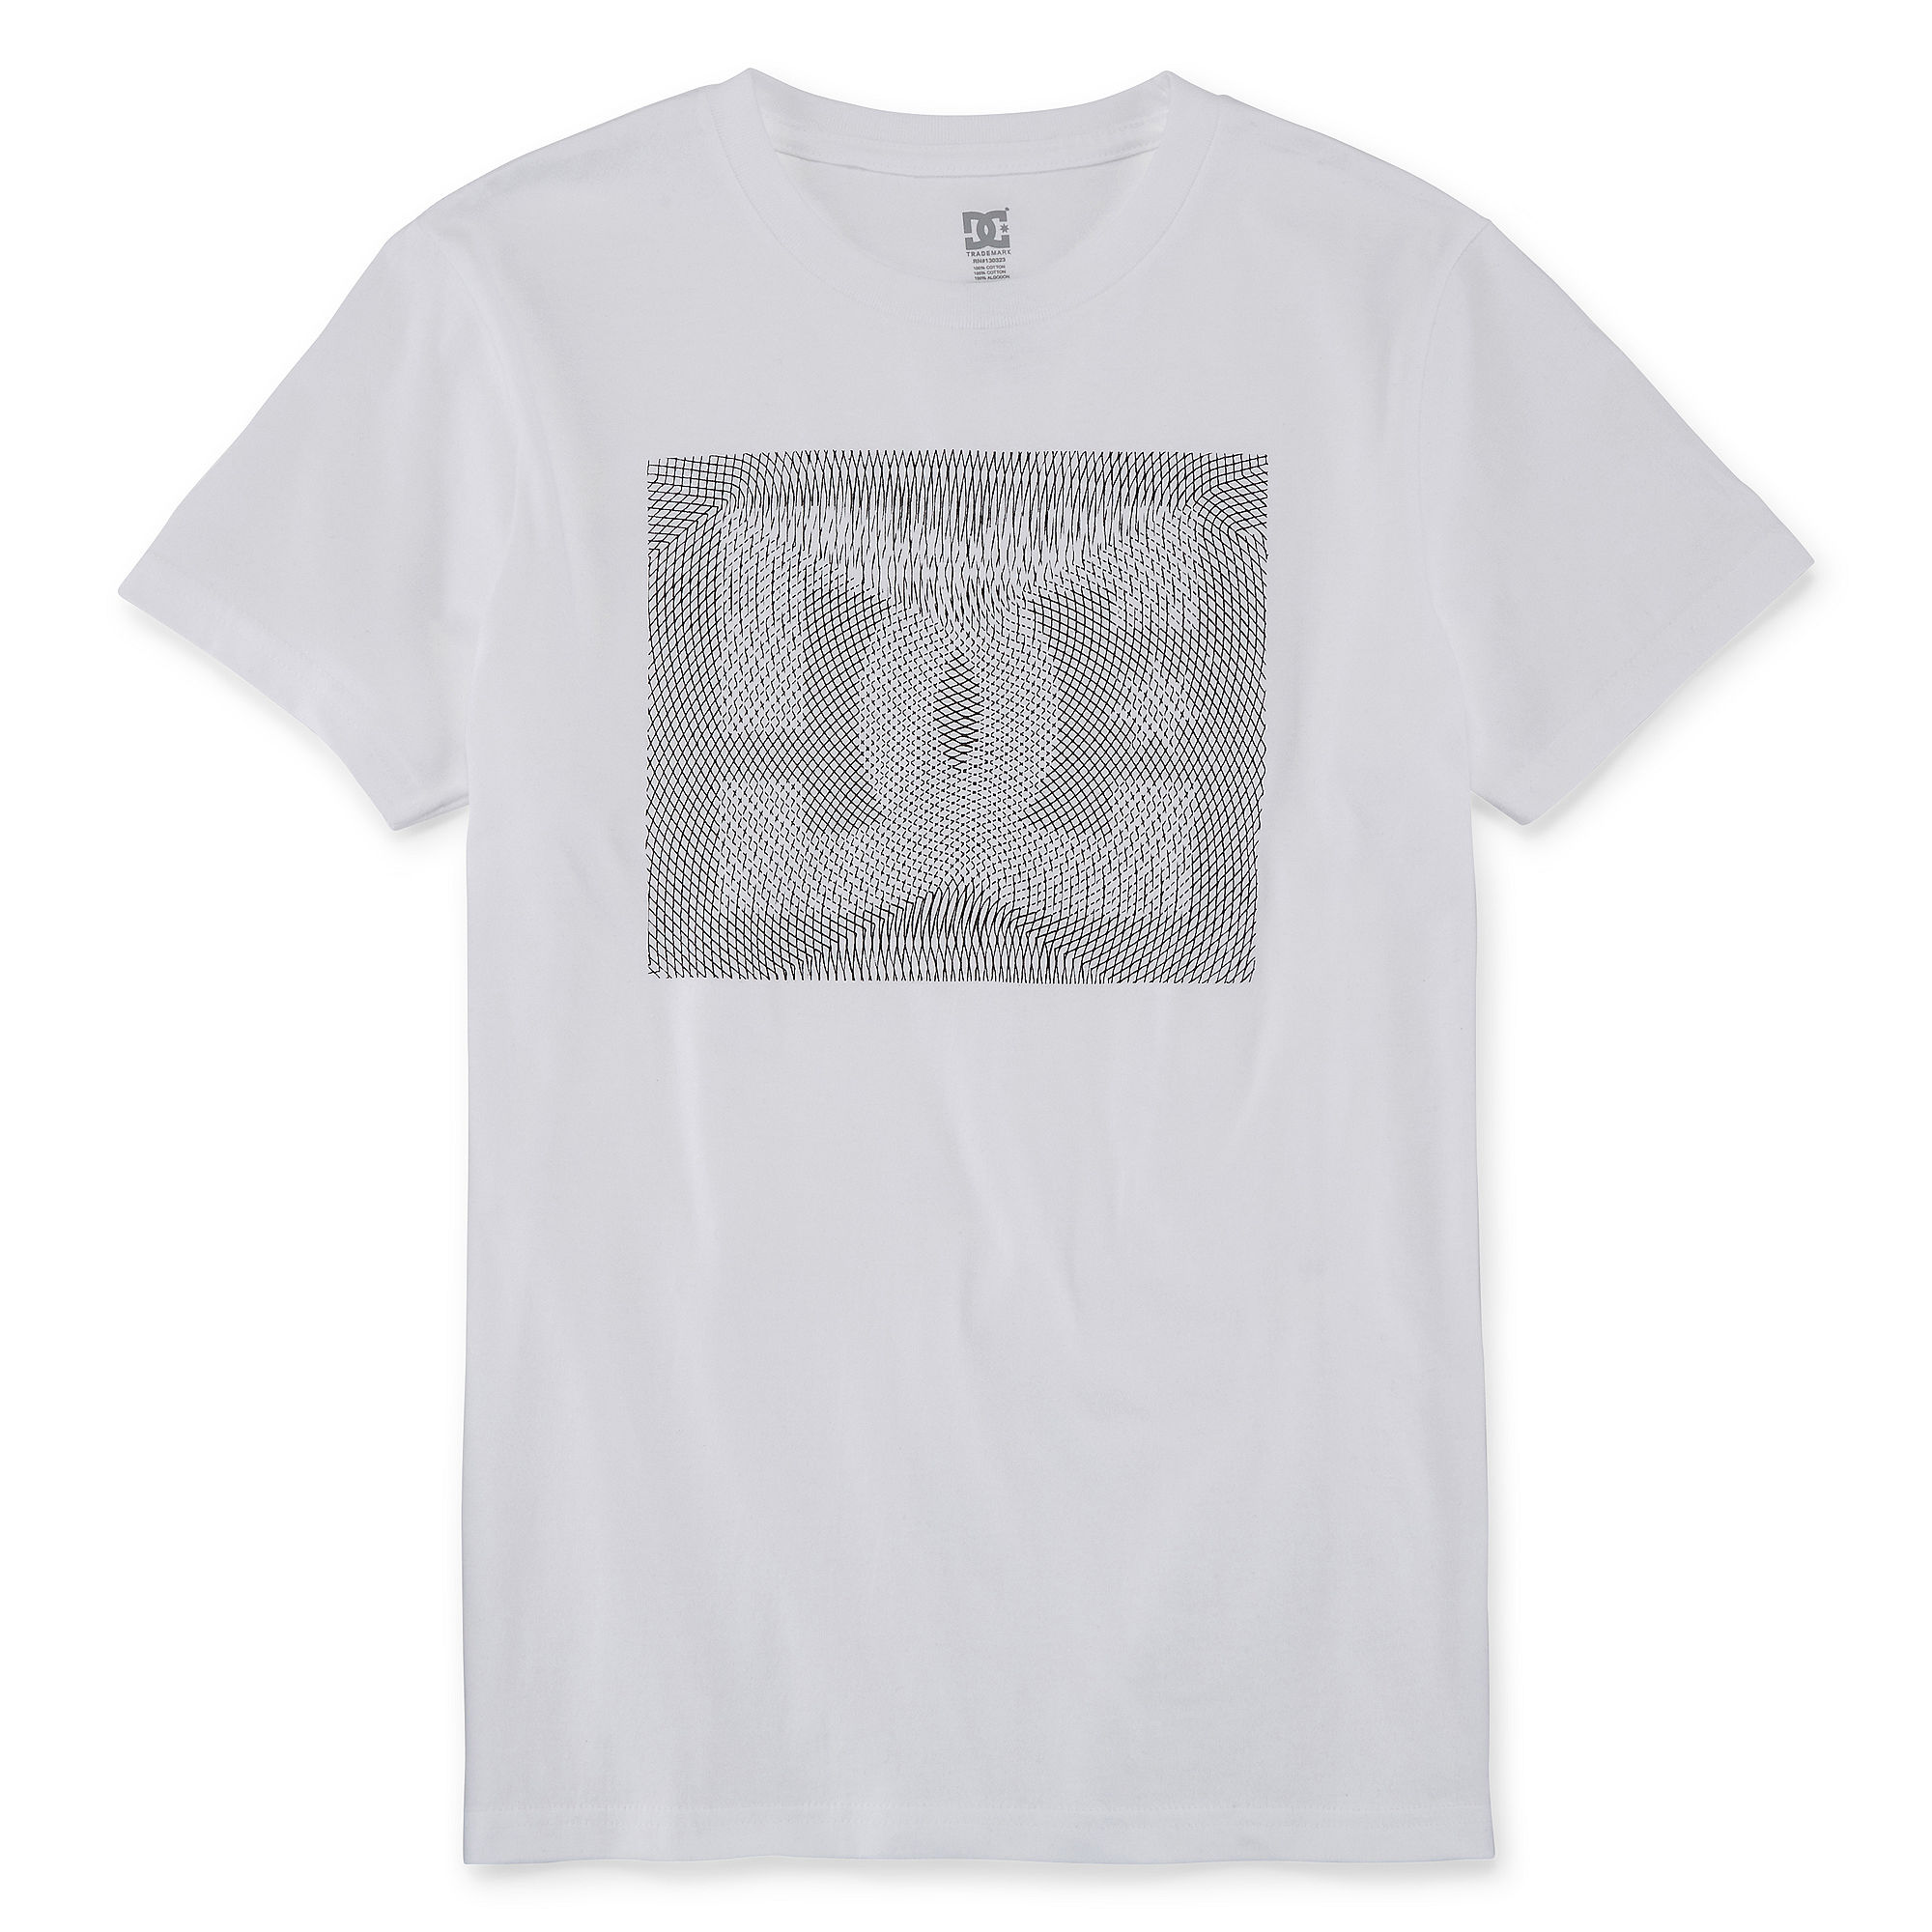 DC Shoes Co. Short-Sleeve Graphic Tee - Boys 8-20